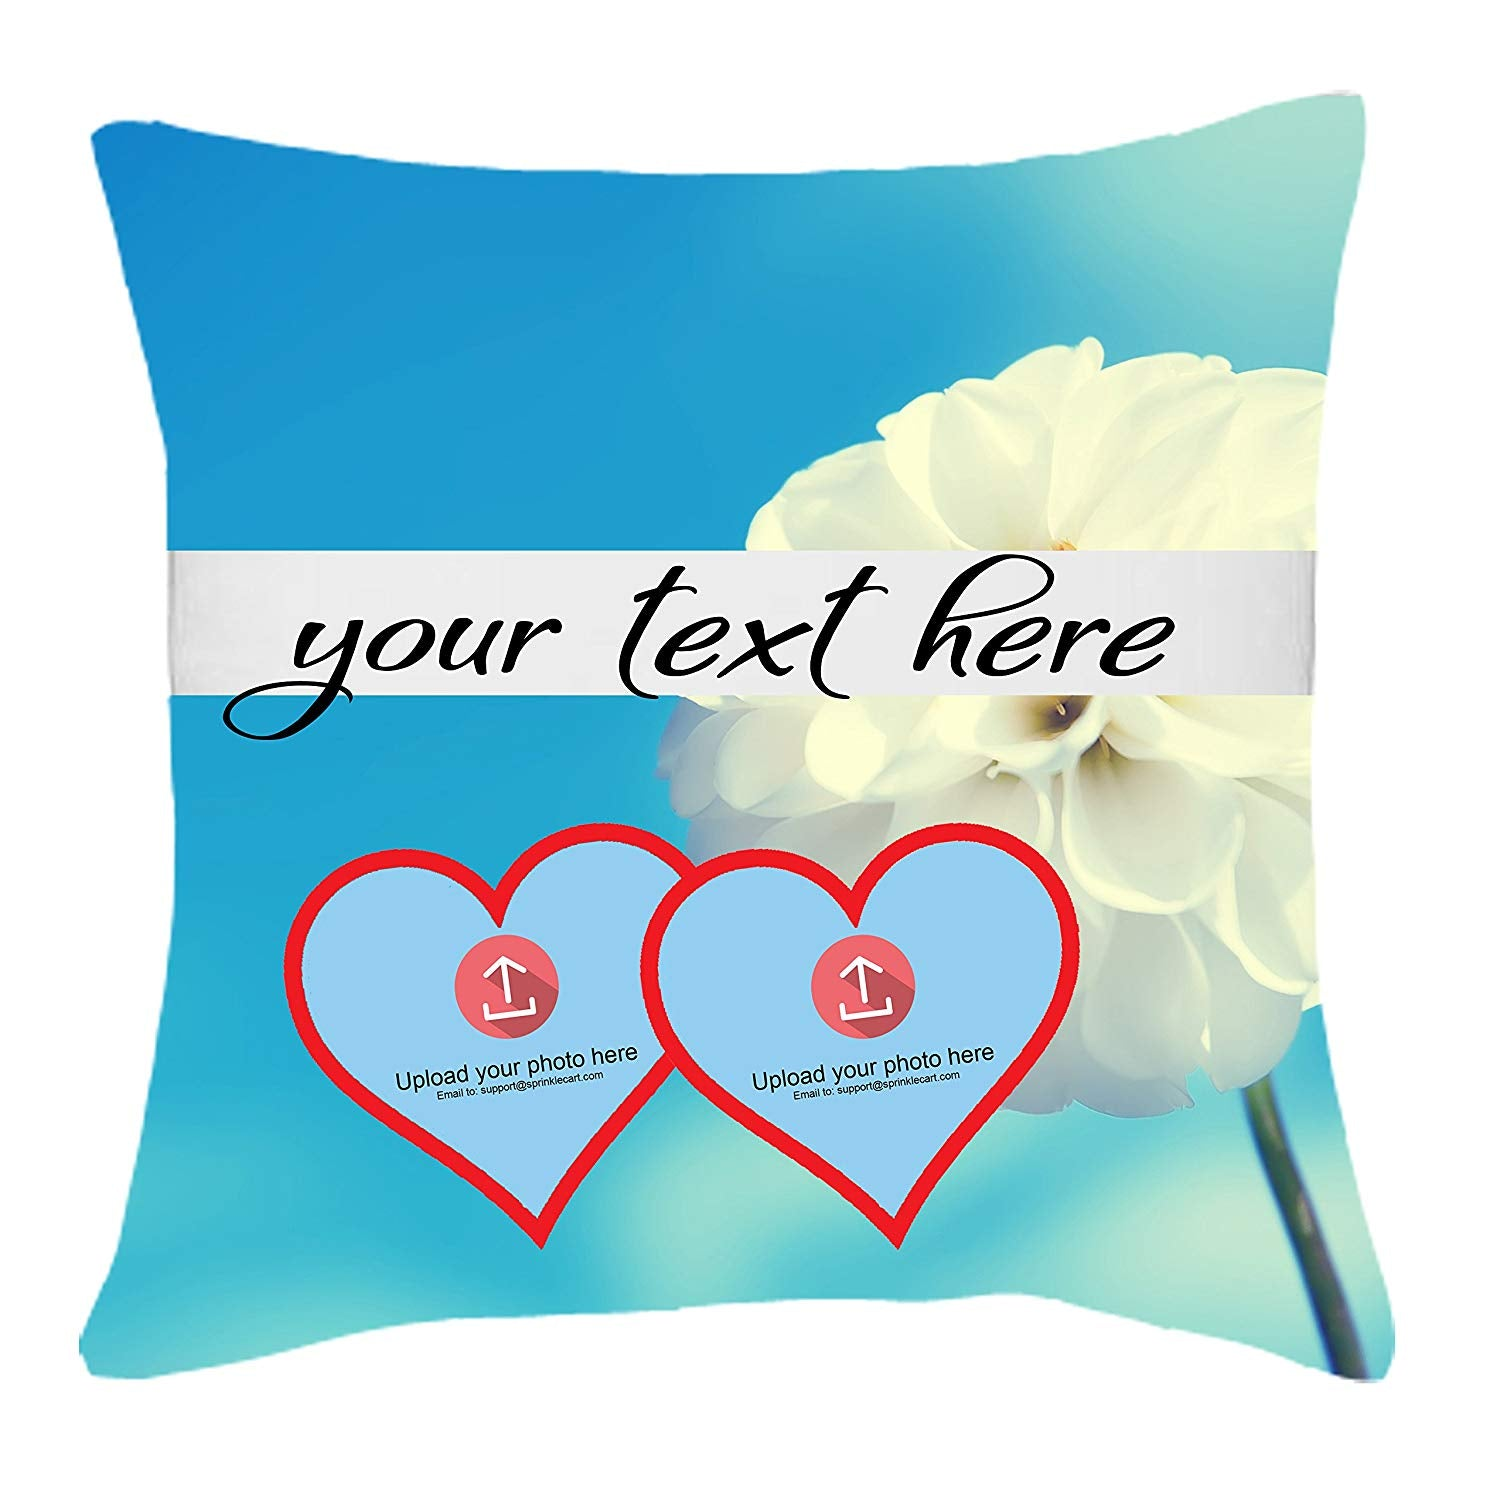 Customized Photo and Text Printed 15″ x 15″ Inches Lovely Gift Cushion Cover with Filler by Sprinklecart